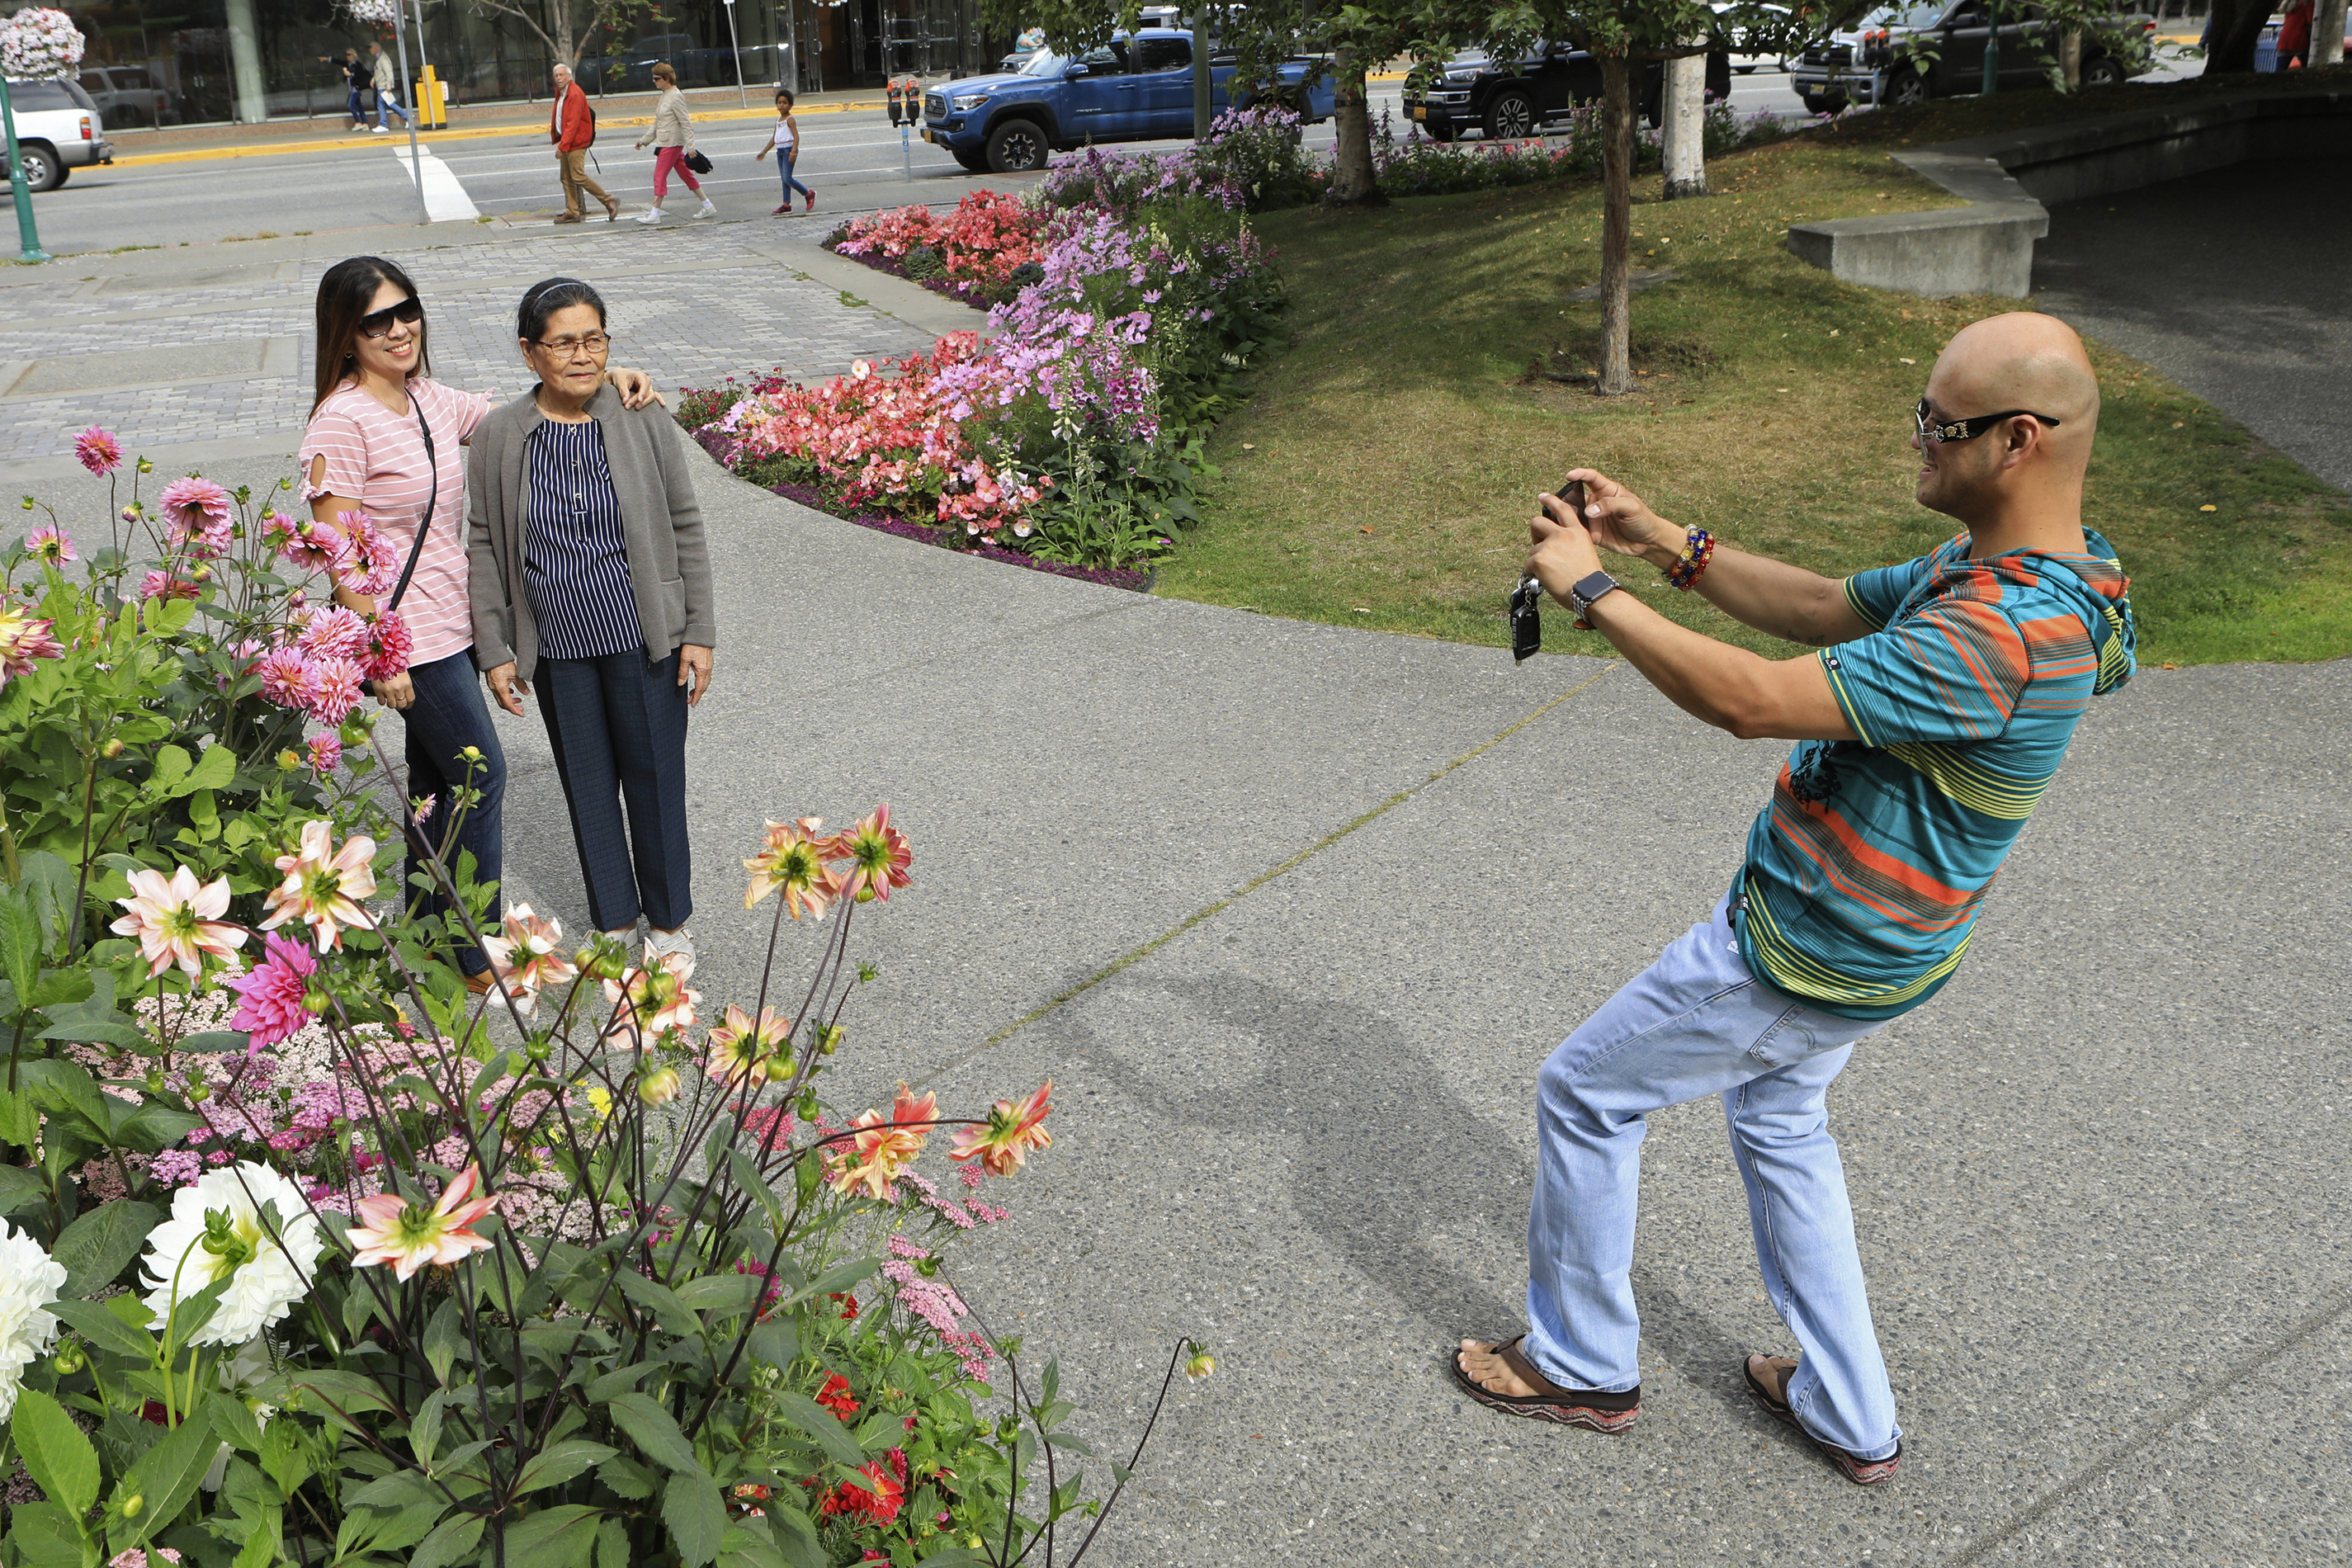 Blooms, beasts affected as Alaska records hottest month